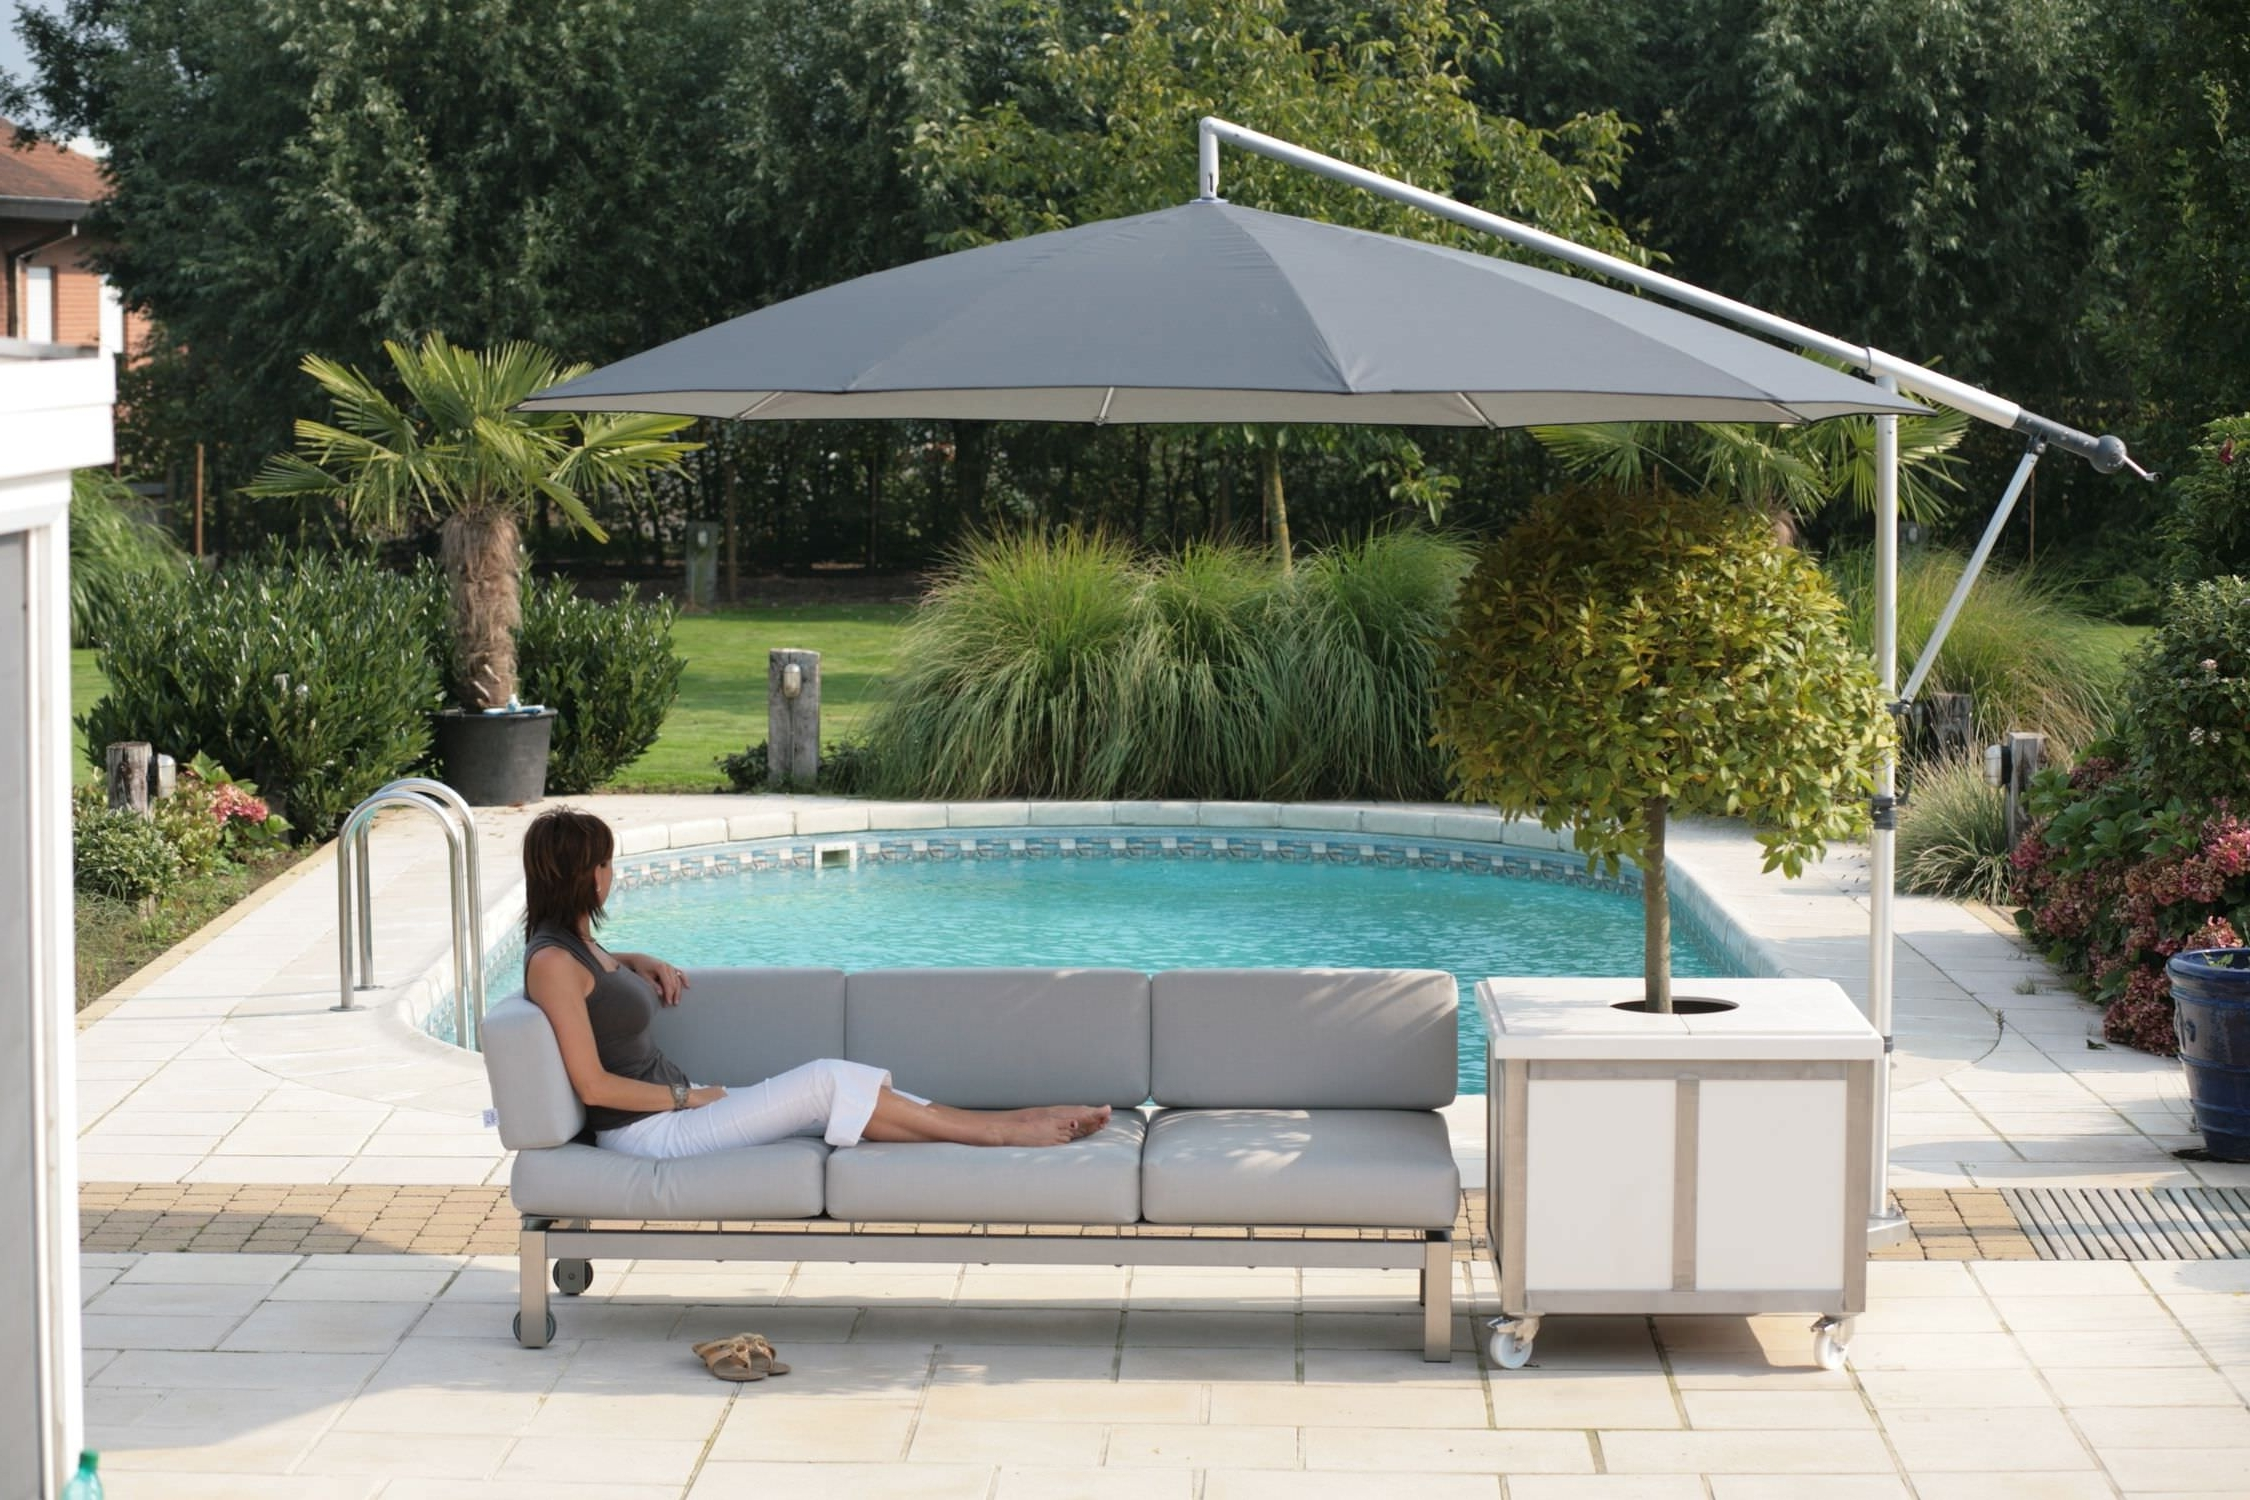 Cheap Patio Umbrellas Intended For Famous Offset Patio Umbrella Base Weights : Offset Patio Umbrella And A (View 5 of 20)